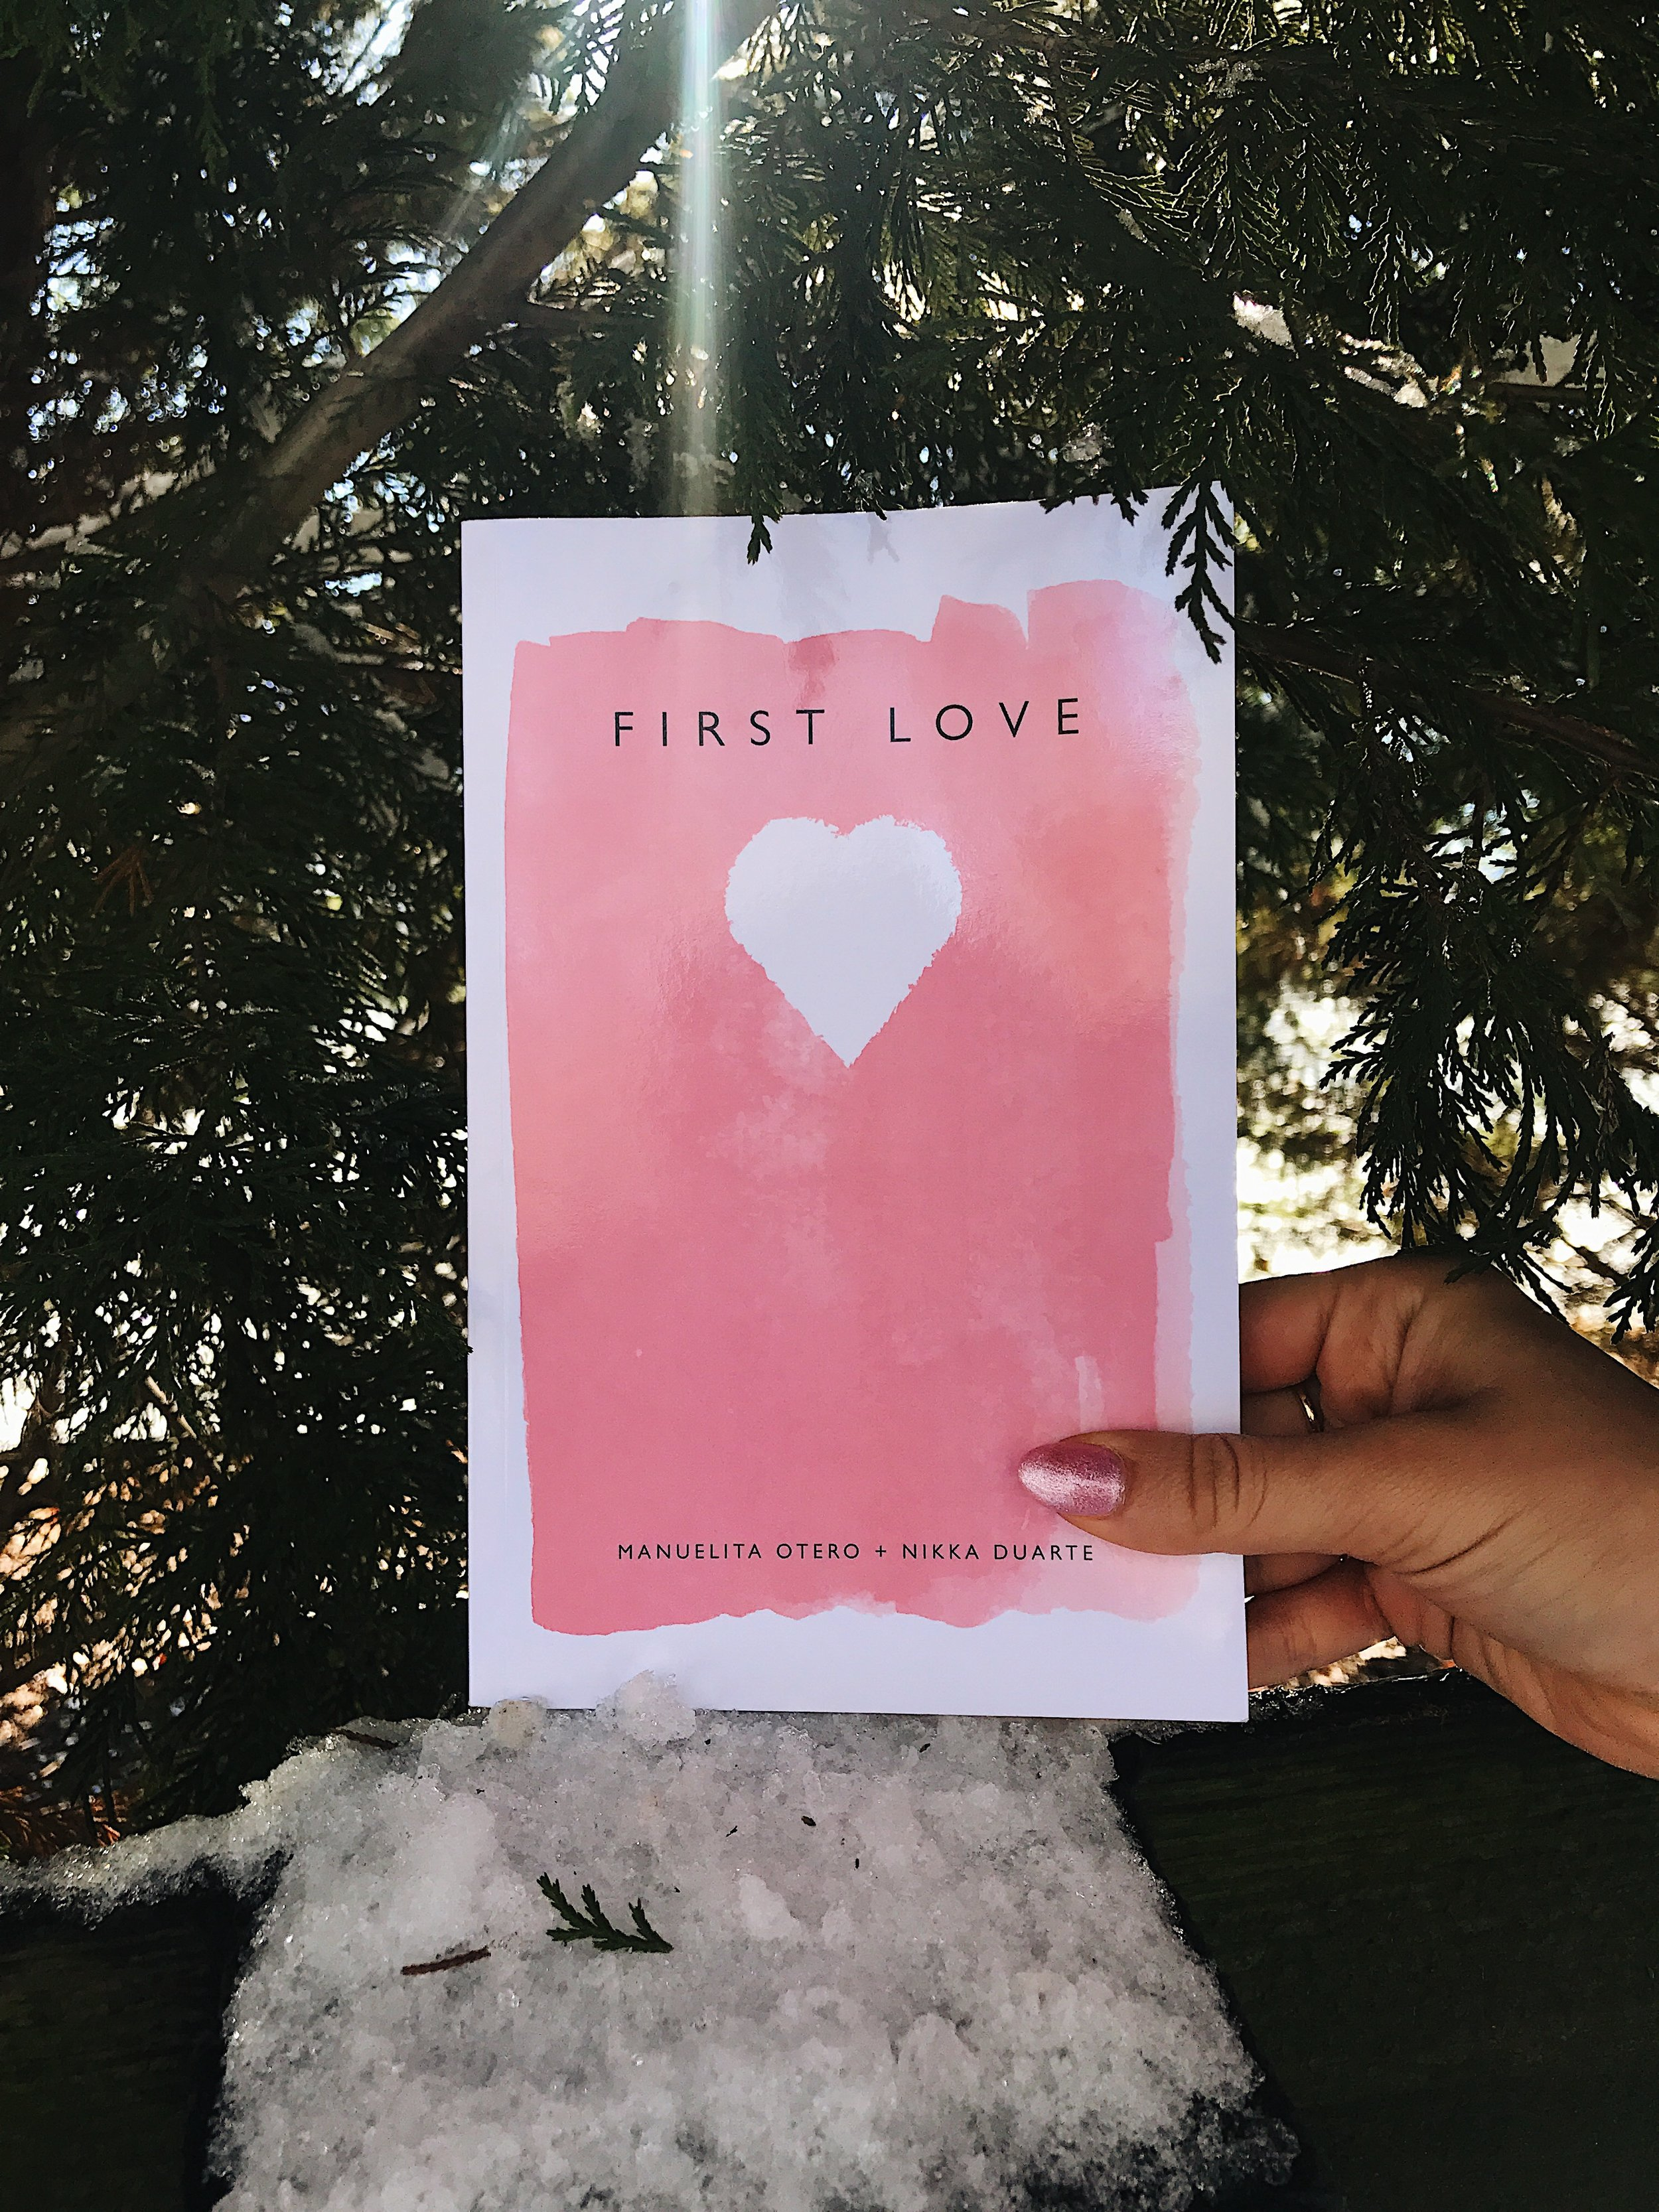 FIRST LOVE - OUT NOW